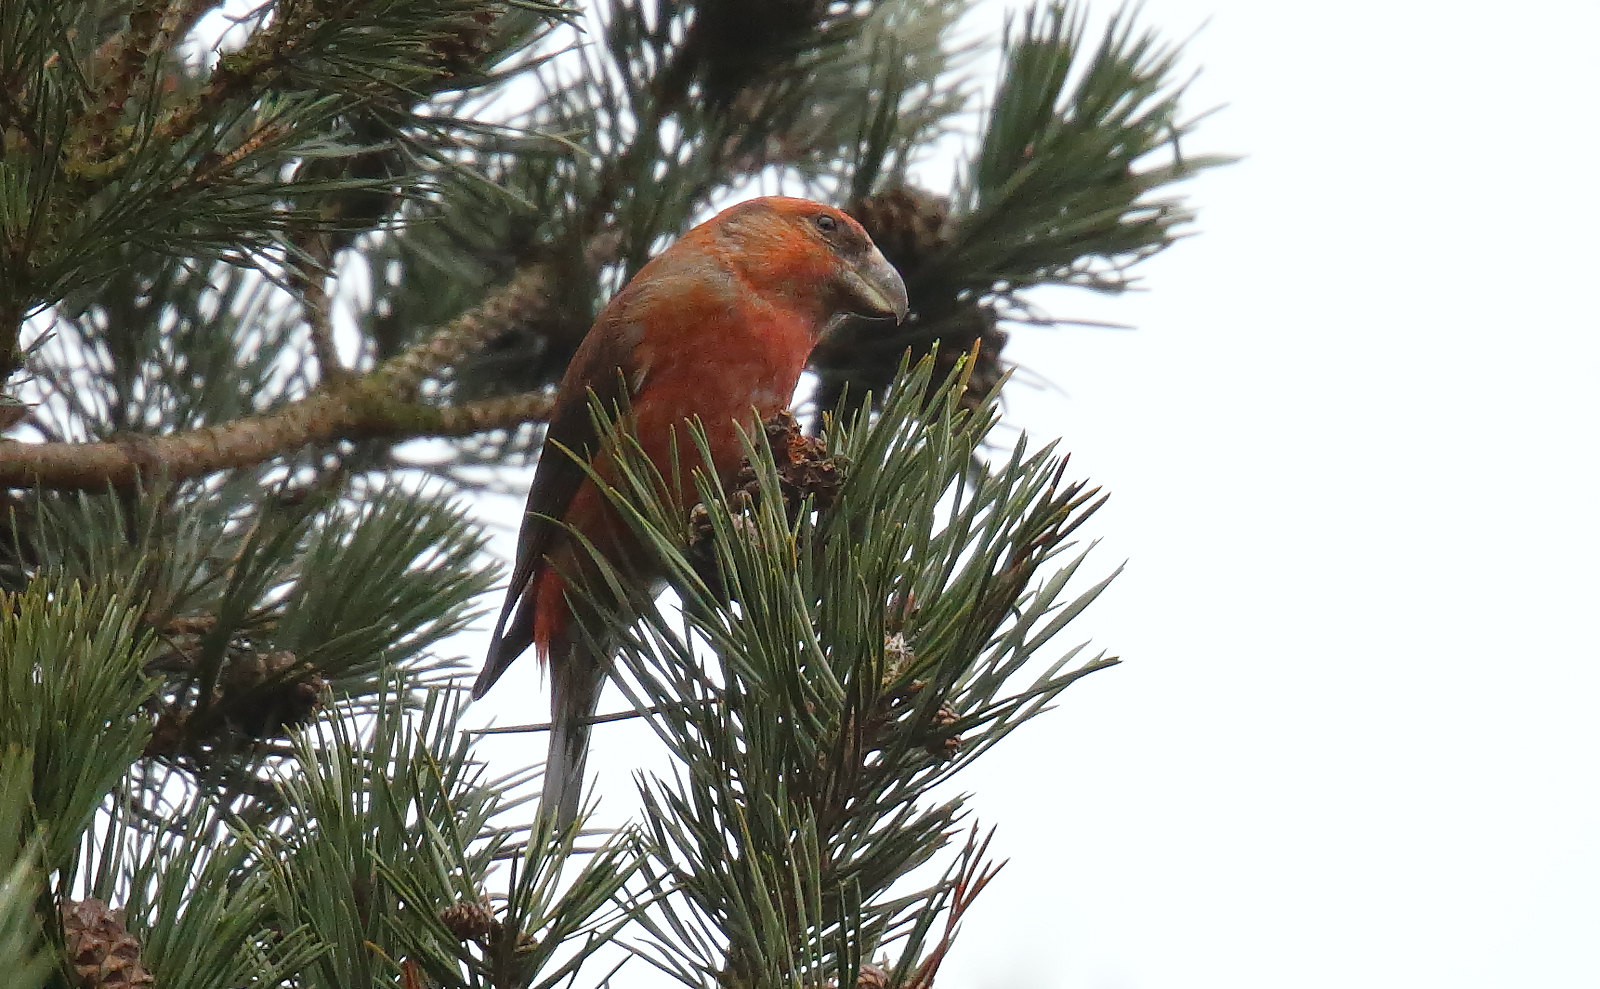 Parrot Crossbill - male